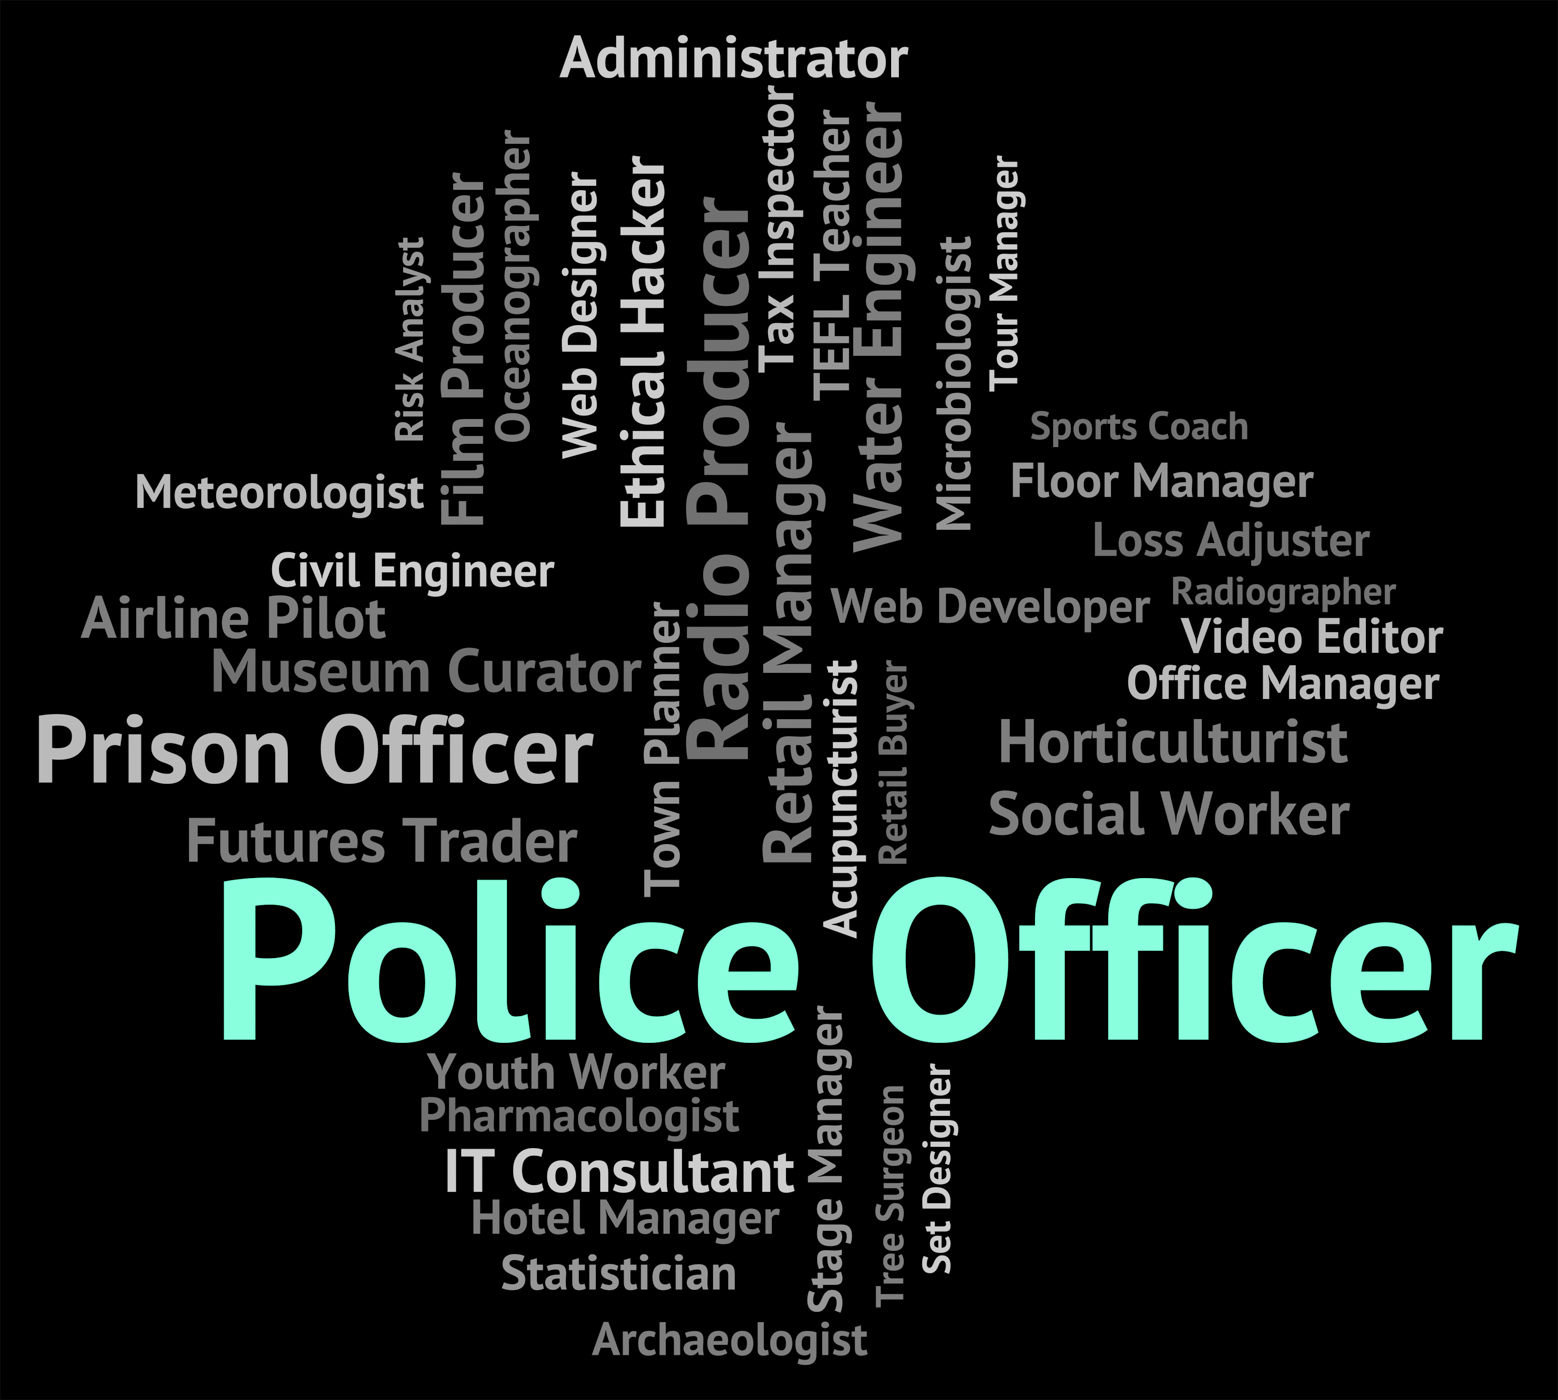 Police officer represents law enforcement and administrator photo